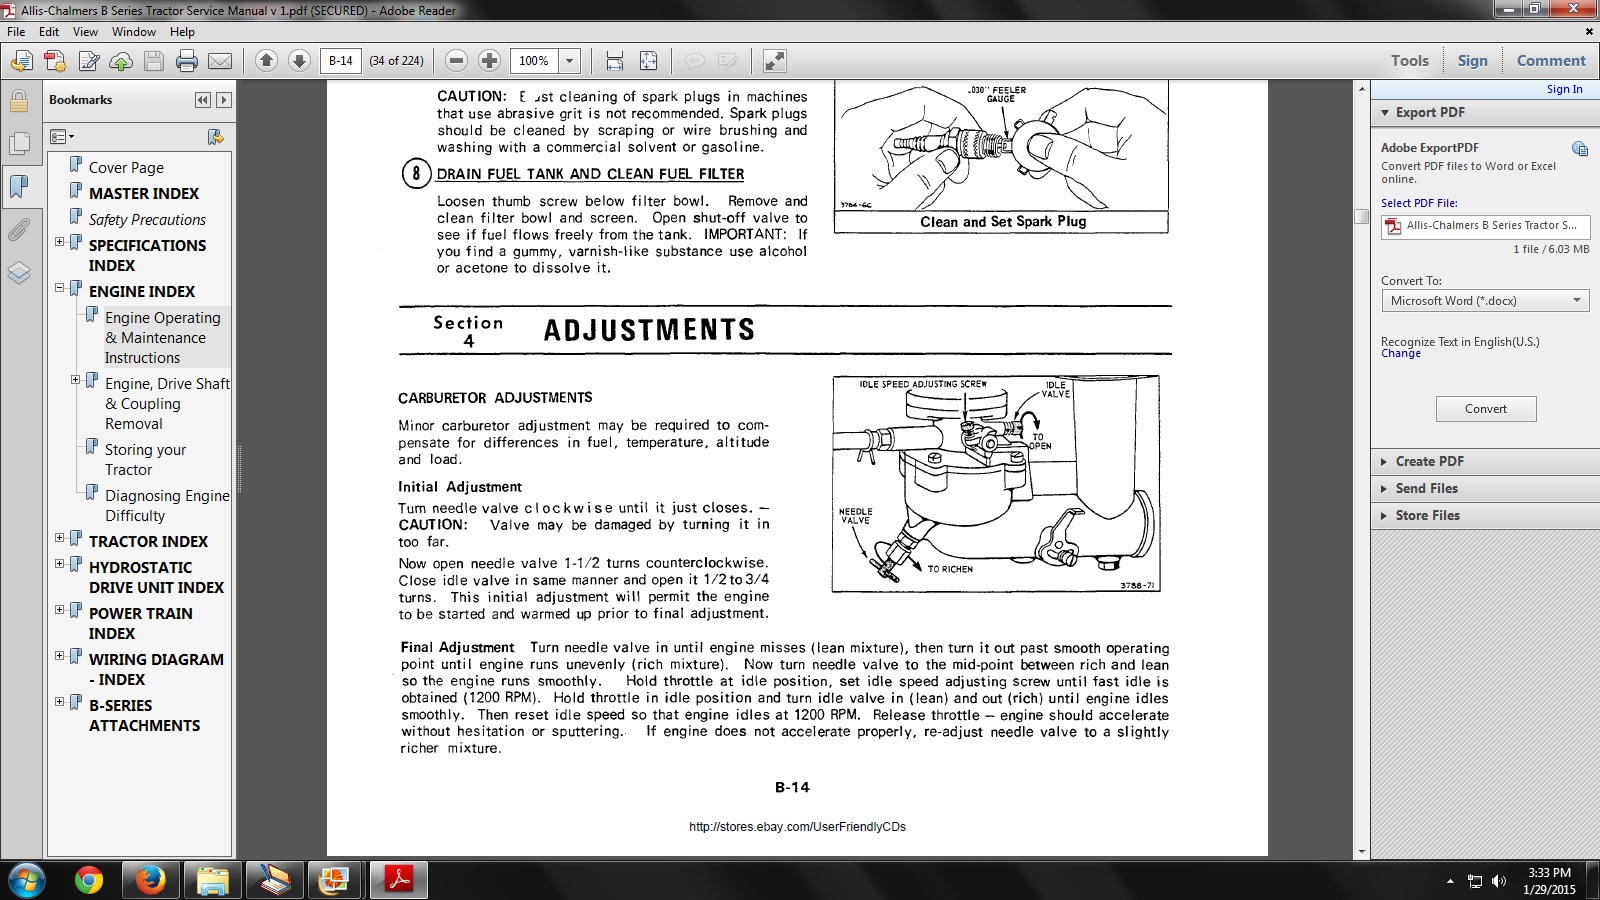 5020 Allis Chalmers Wiring Diagram Guide And Troubleshooting Of D17 Tractor Harley Sportster 7060 Diagrams B